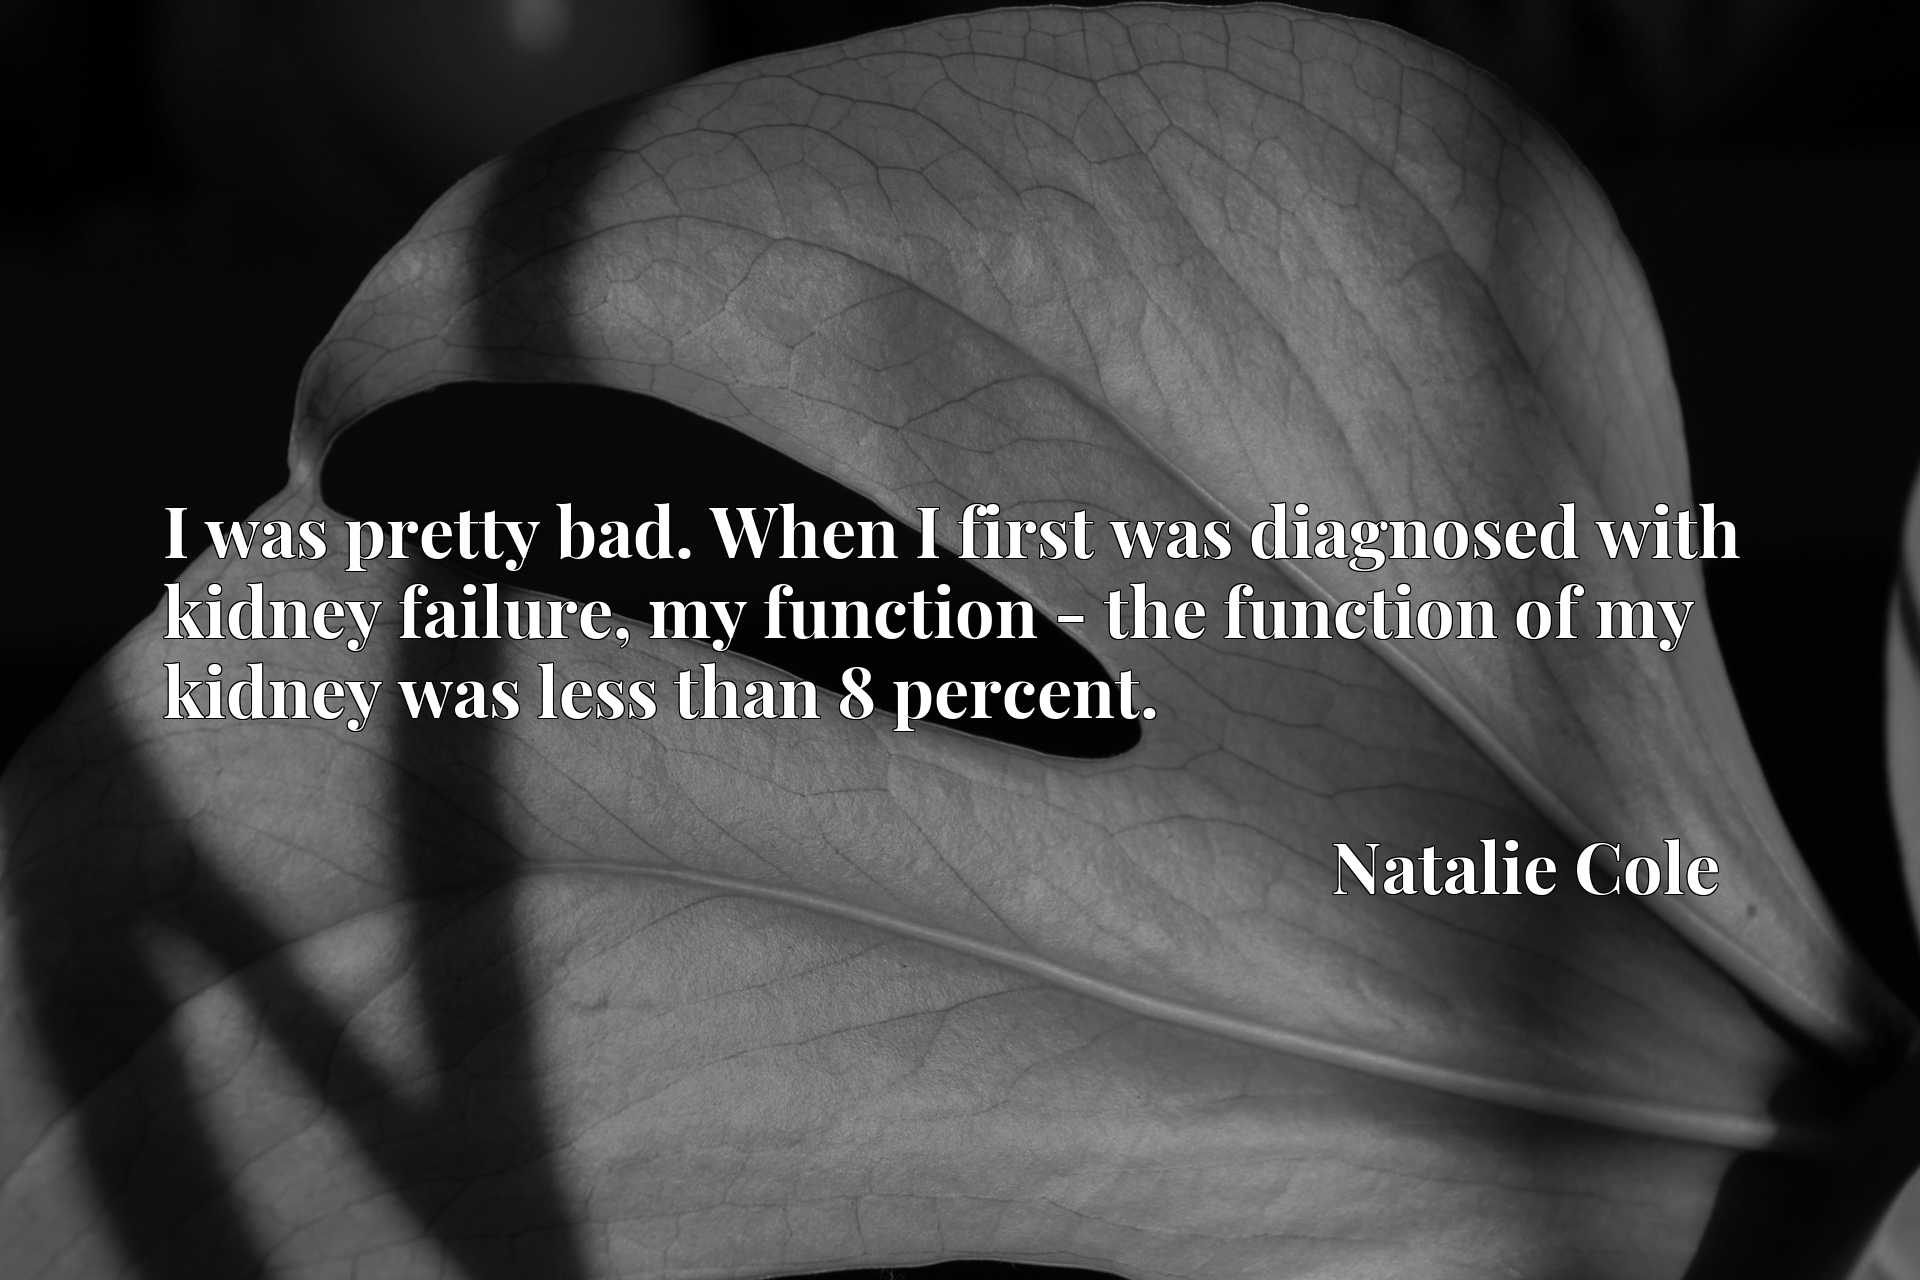 I was pretty bad. When I first was diagnosed with kidney failure, my function - the function of my kidney was less than 8 percent.